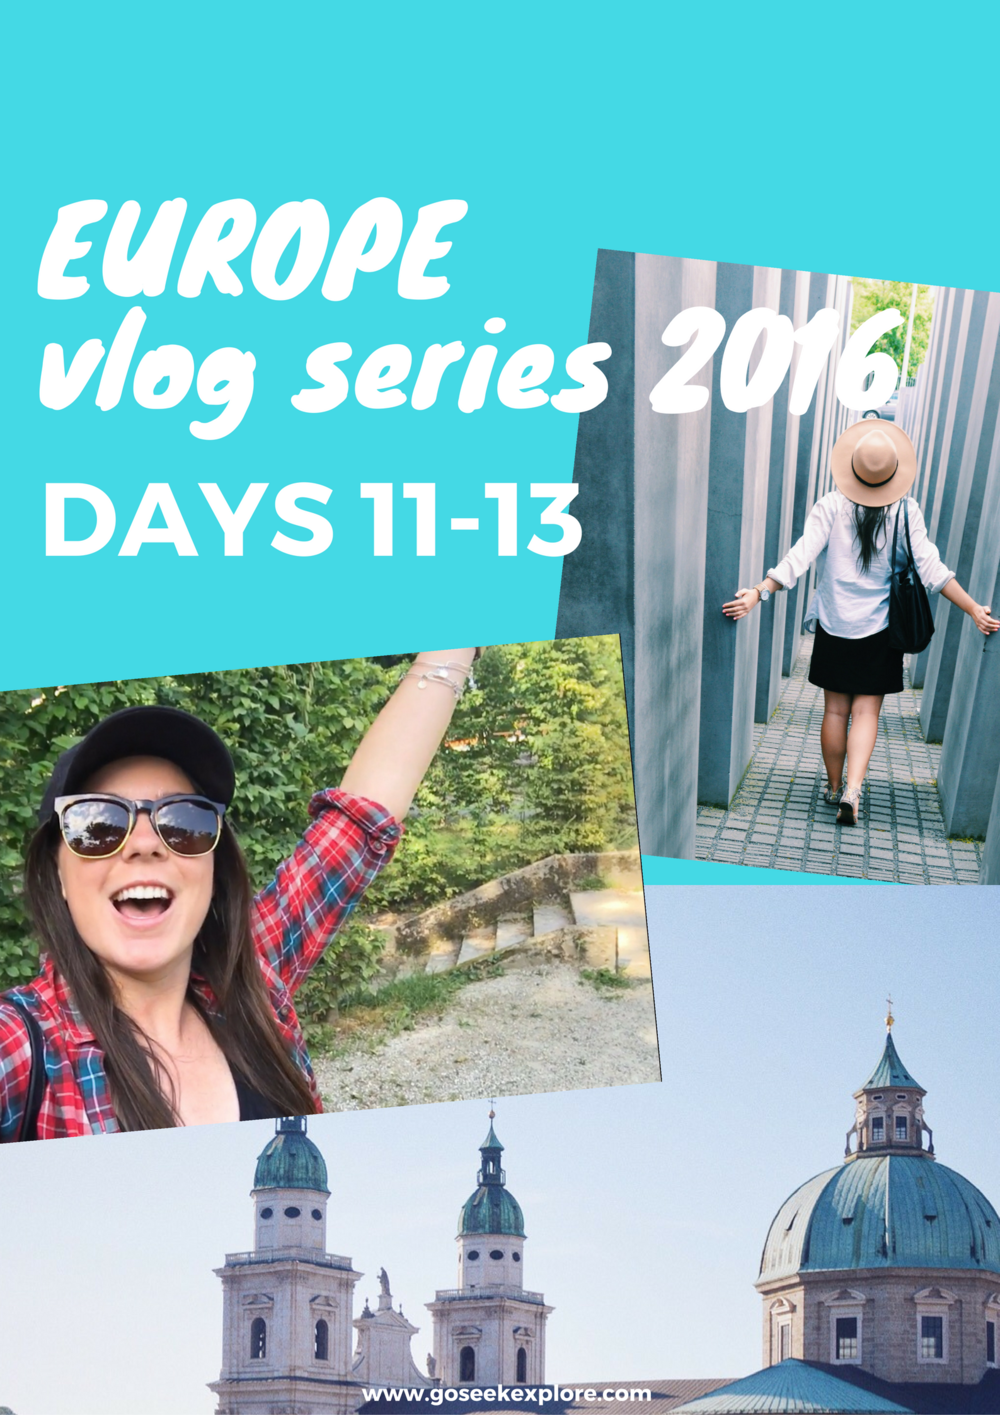 This is a fun vlog series about working and traveling in Europe! In this one she visits Prague, Czech Republic and Berlin, Germany...and her job paid for it all!